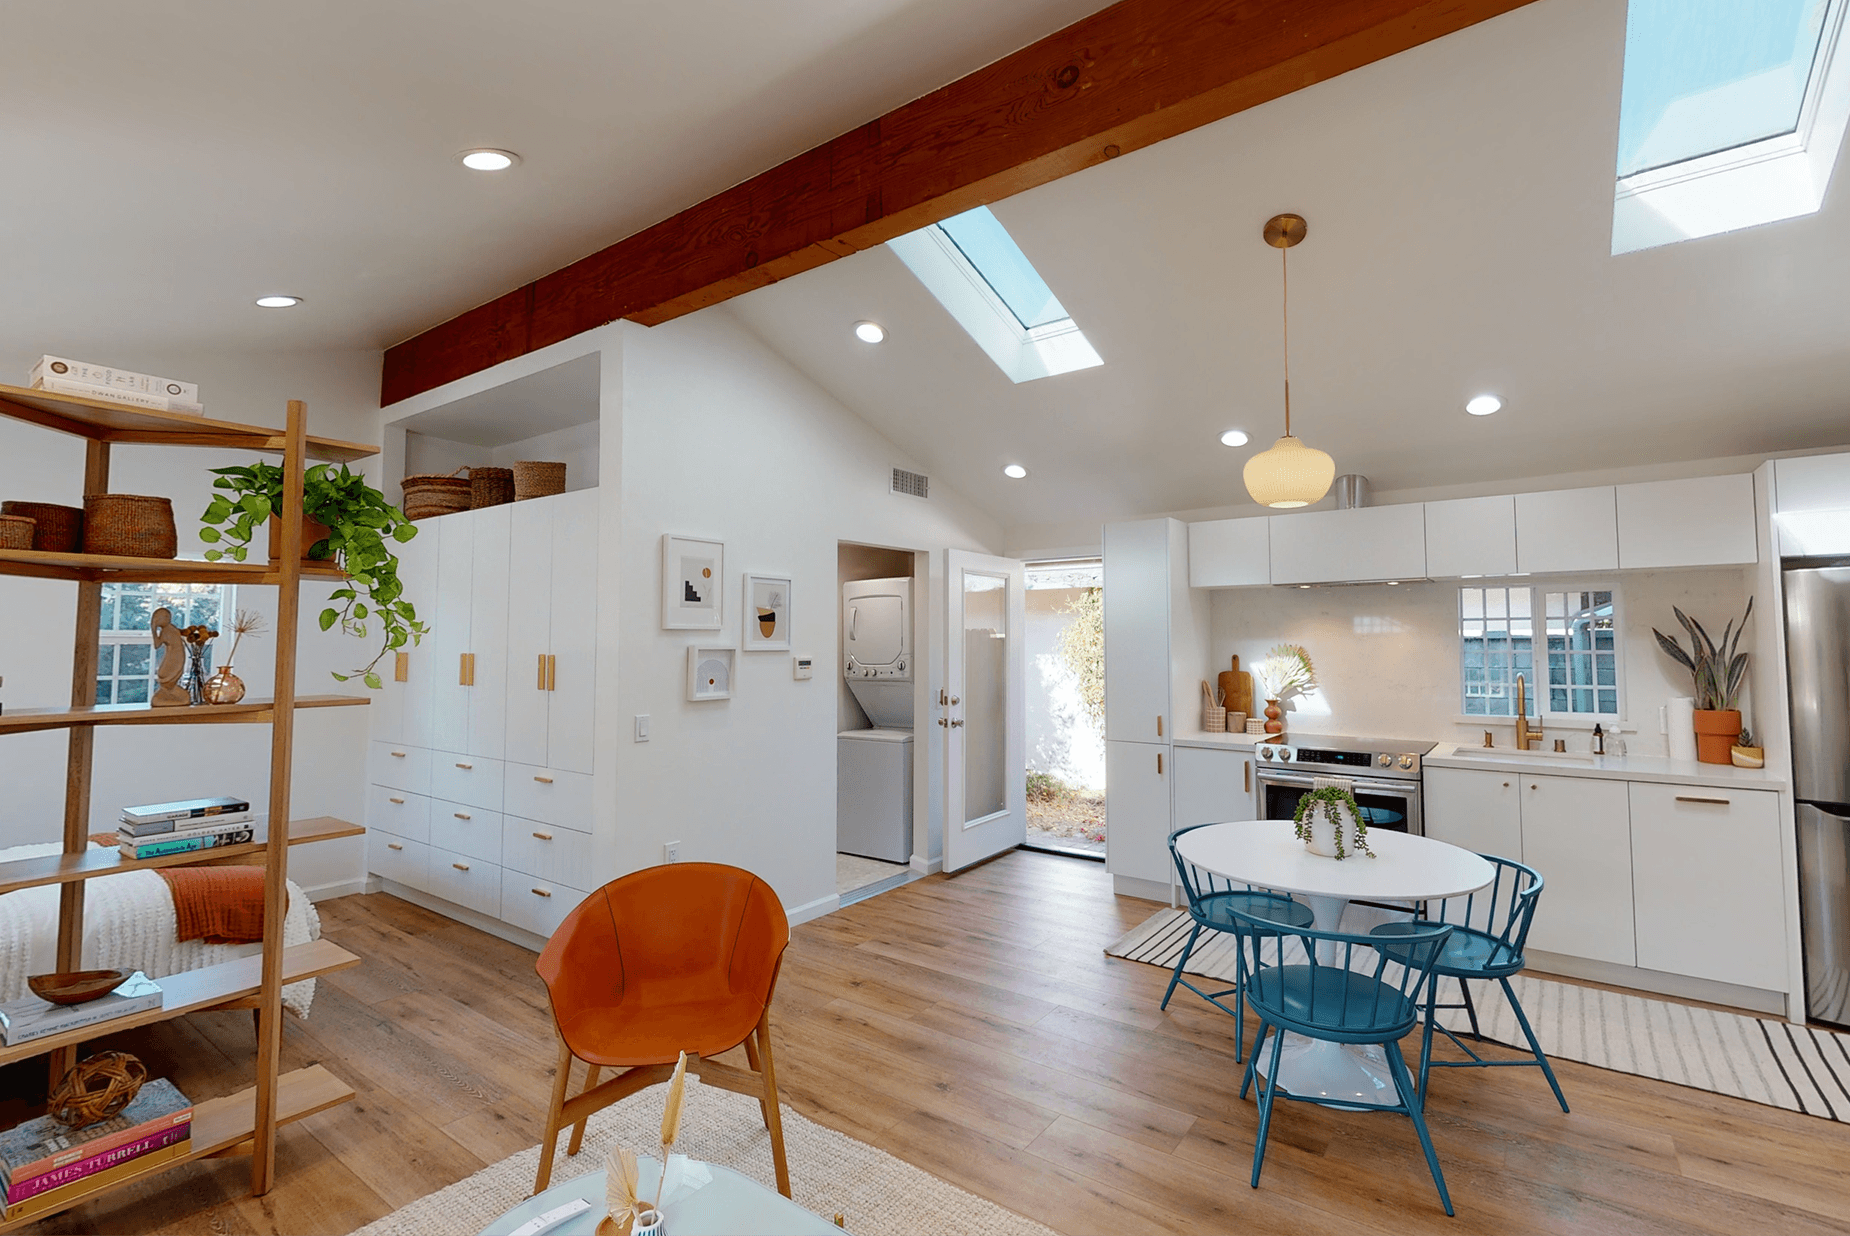 A garage conversion that is now a contemporary Los Angeles Accessory Dwelling Unit (ADU).